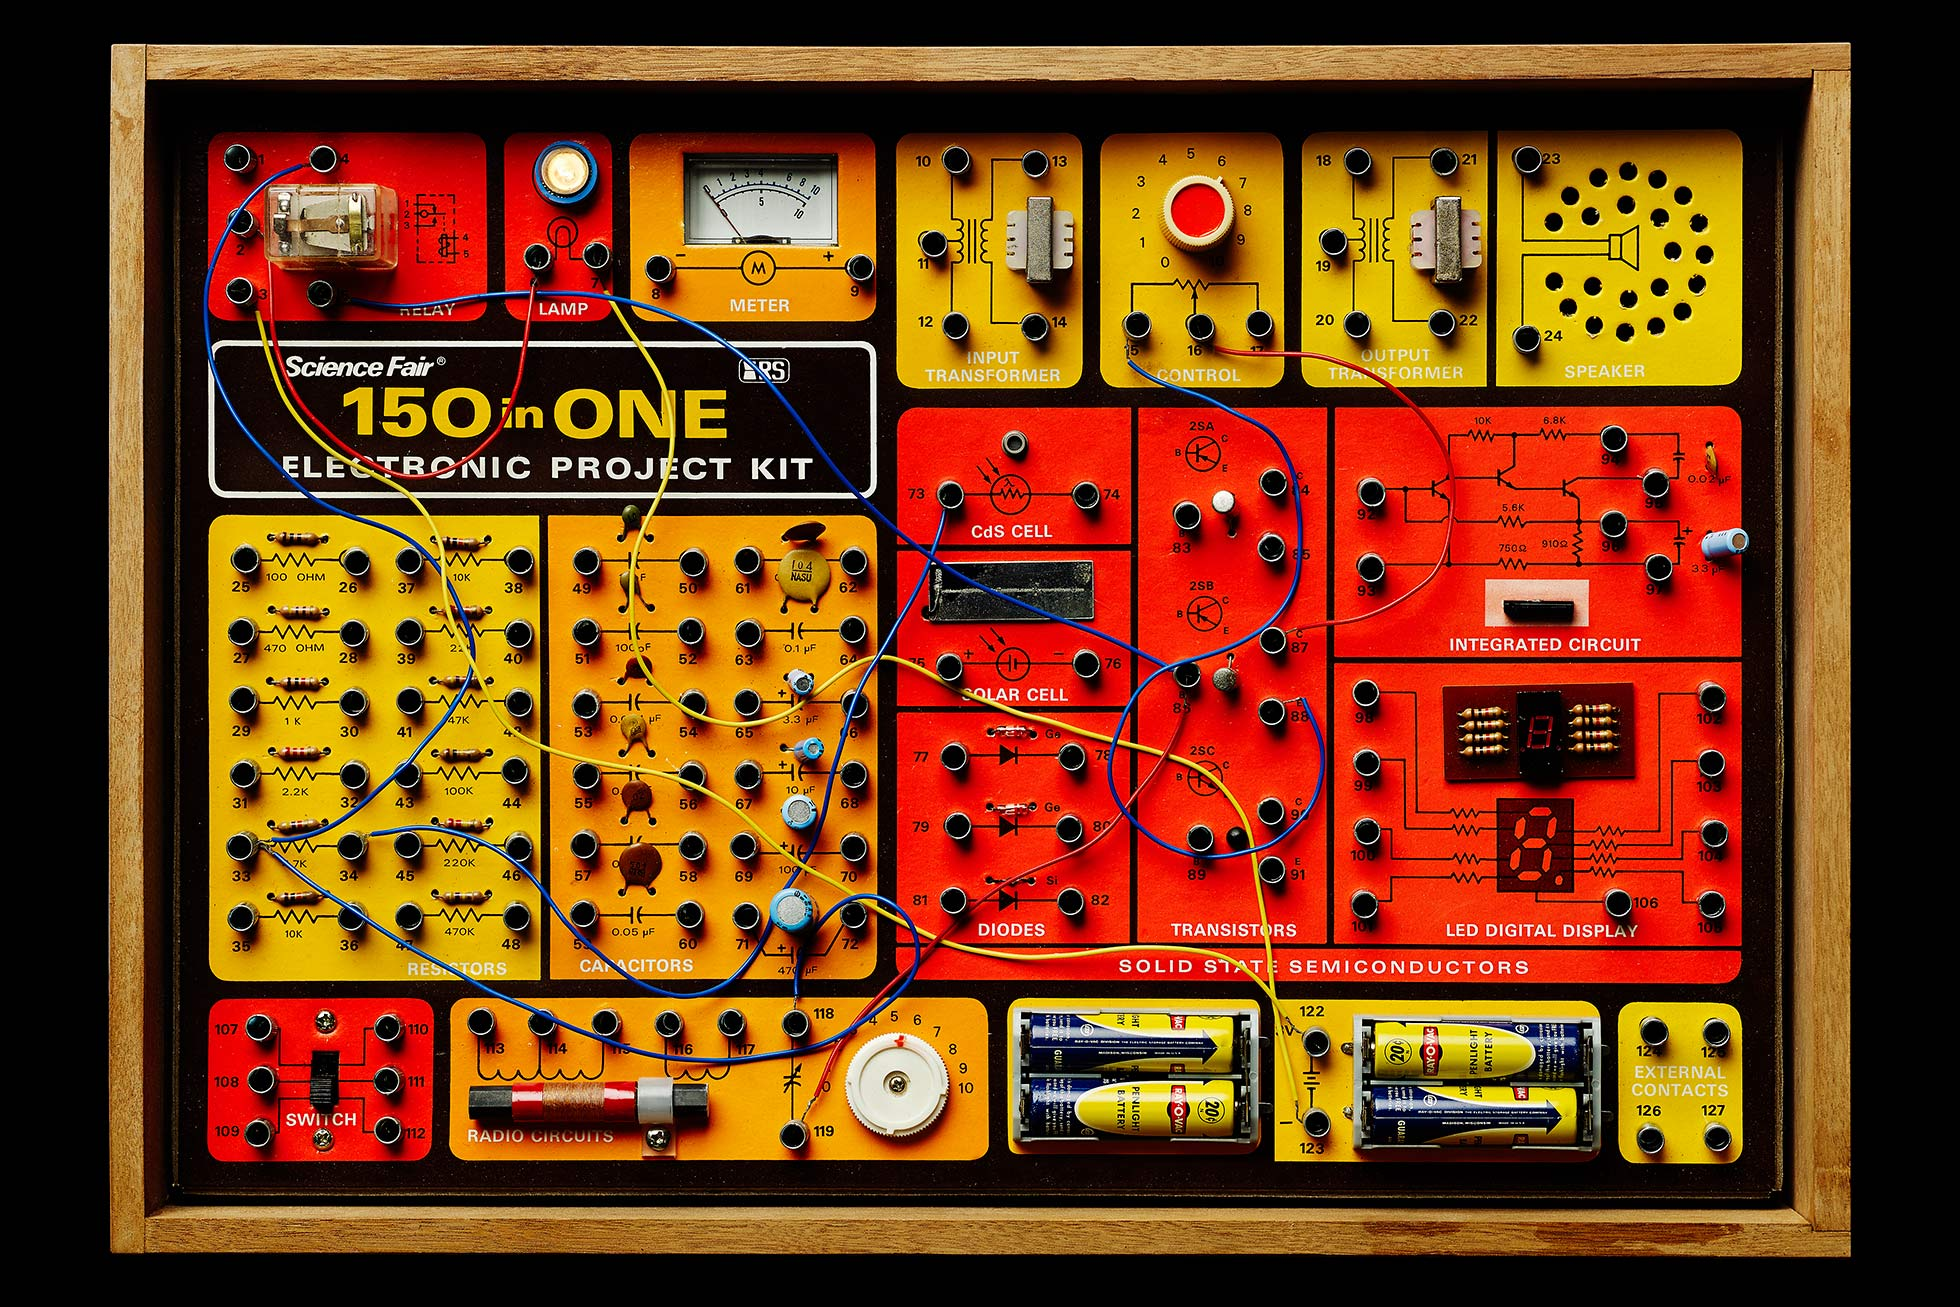 Vintage electronic kit 150 in 1